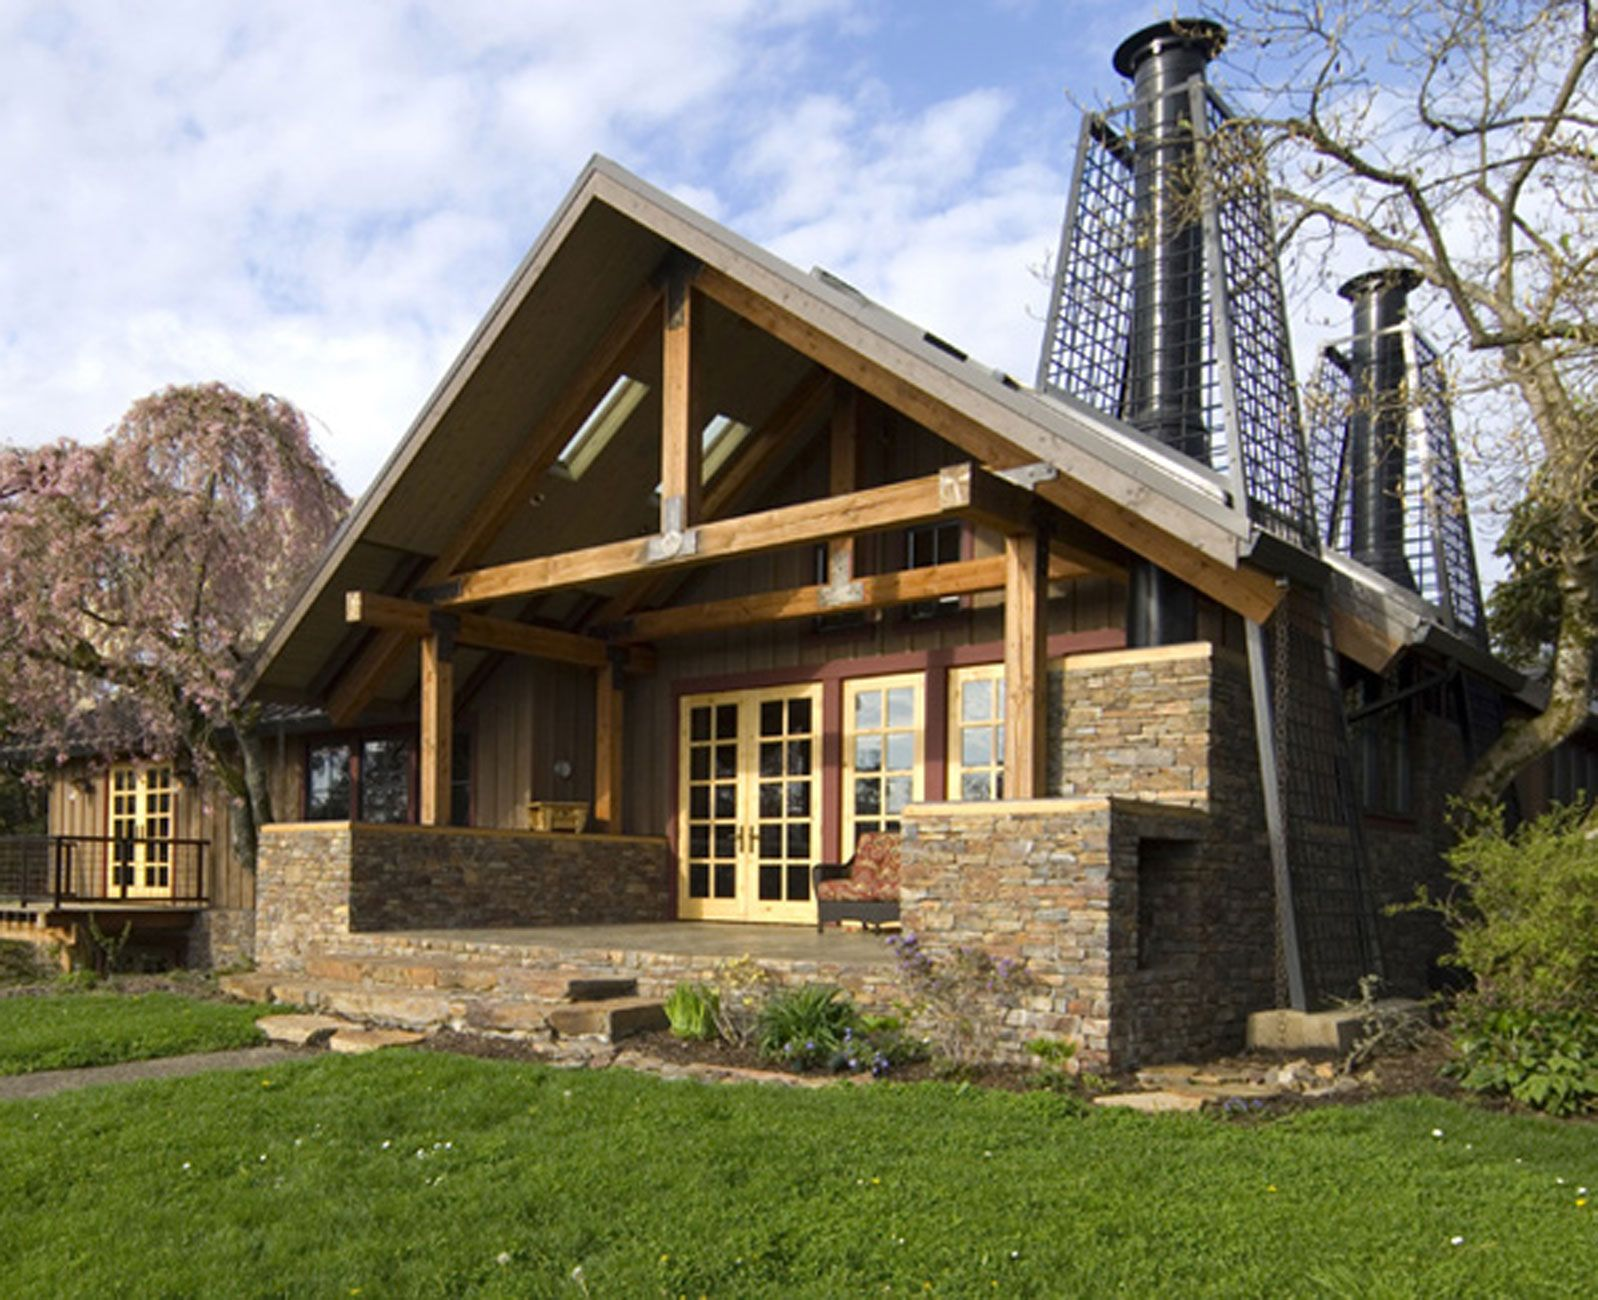 100 Wood And Stone House Rustic Houses Exterior House Designs Exterior Stone House Plans